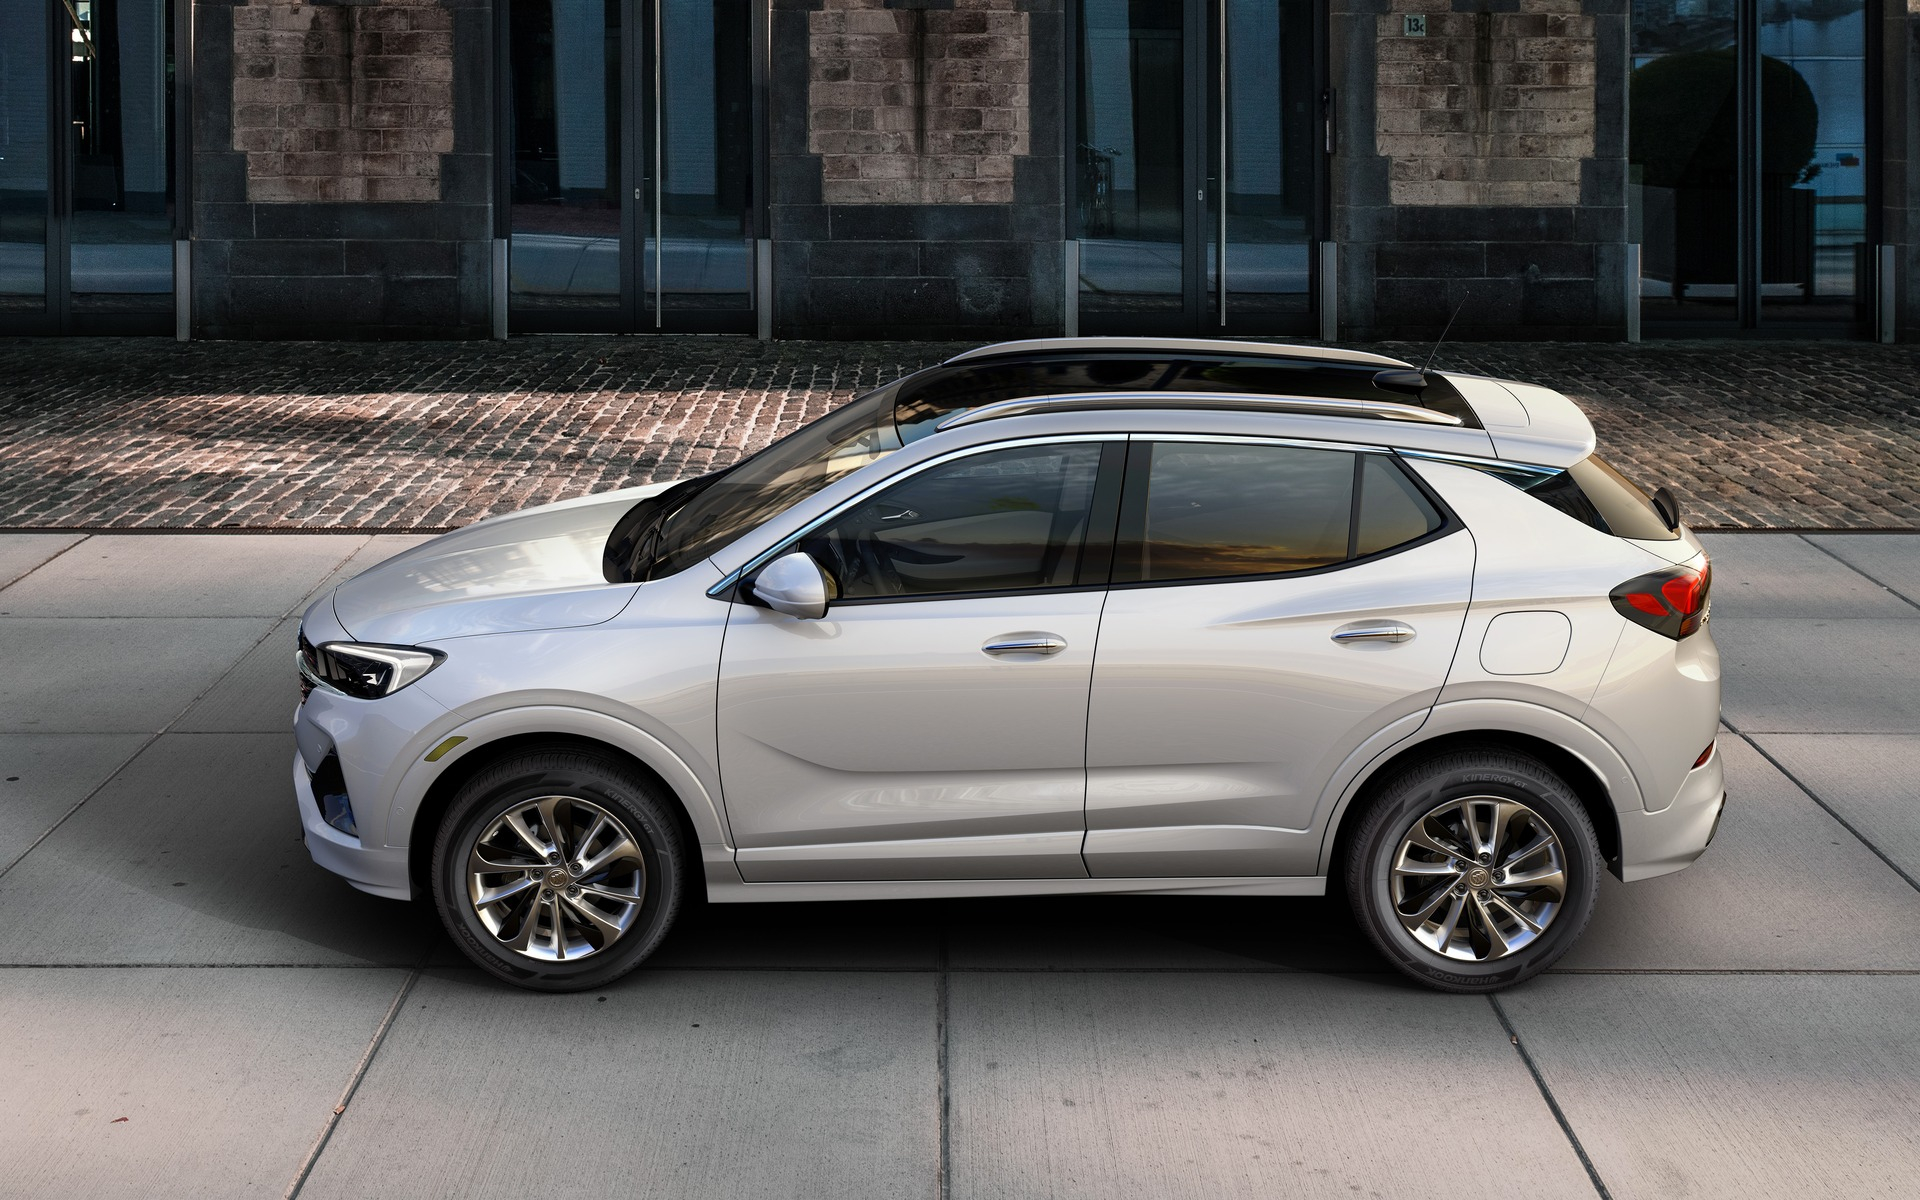 Buick Encore Gx To Offer A Pair Of Three-Cylinder Engines 2021 Buick Encore Msrp, Models, Manual